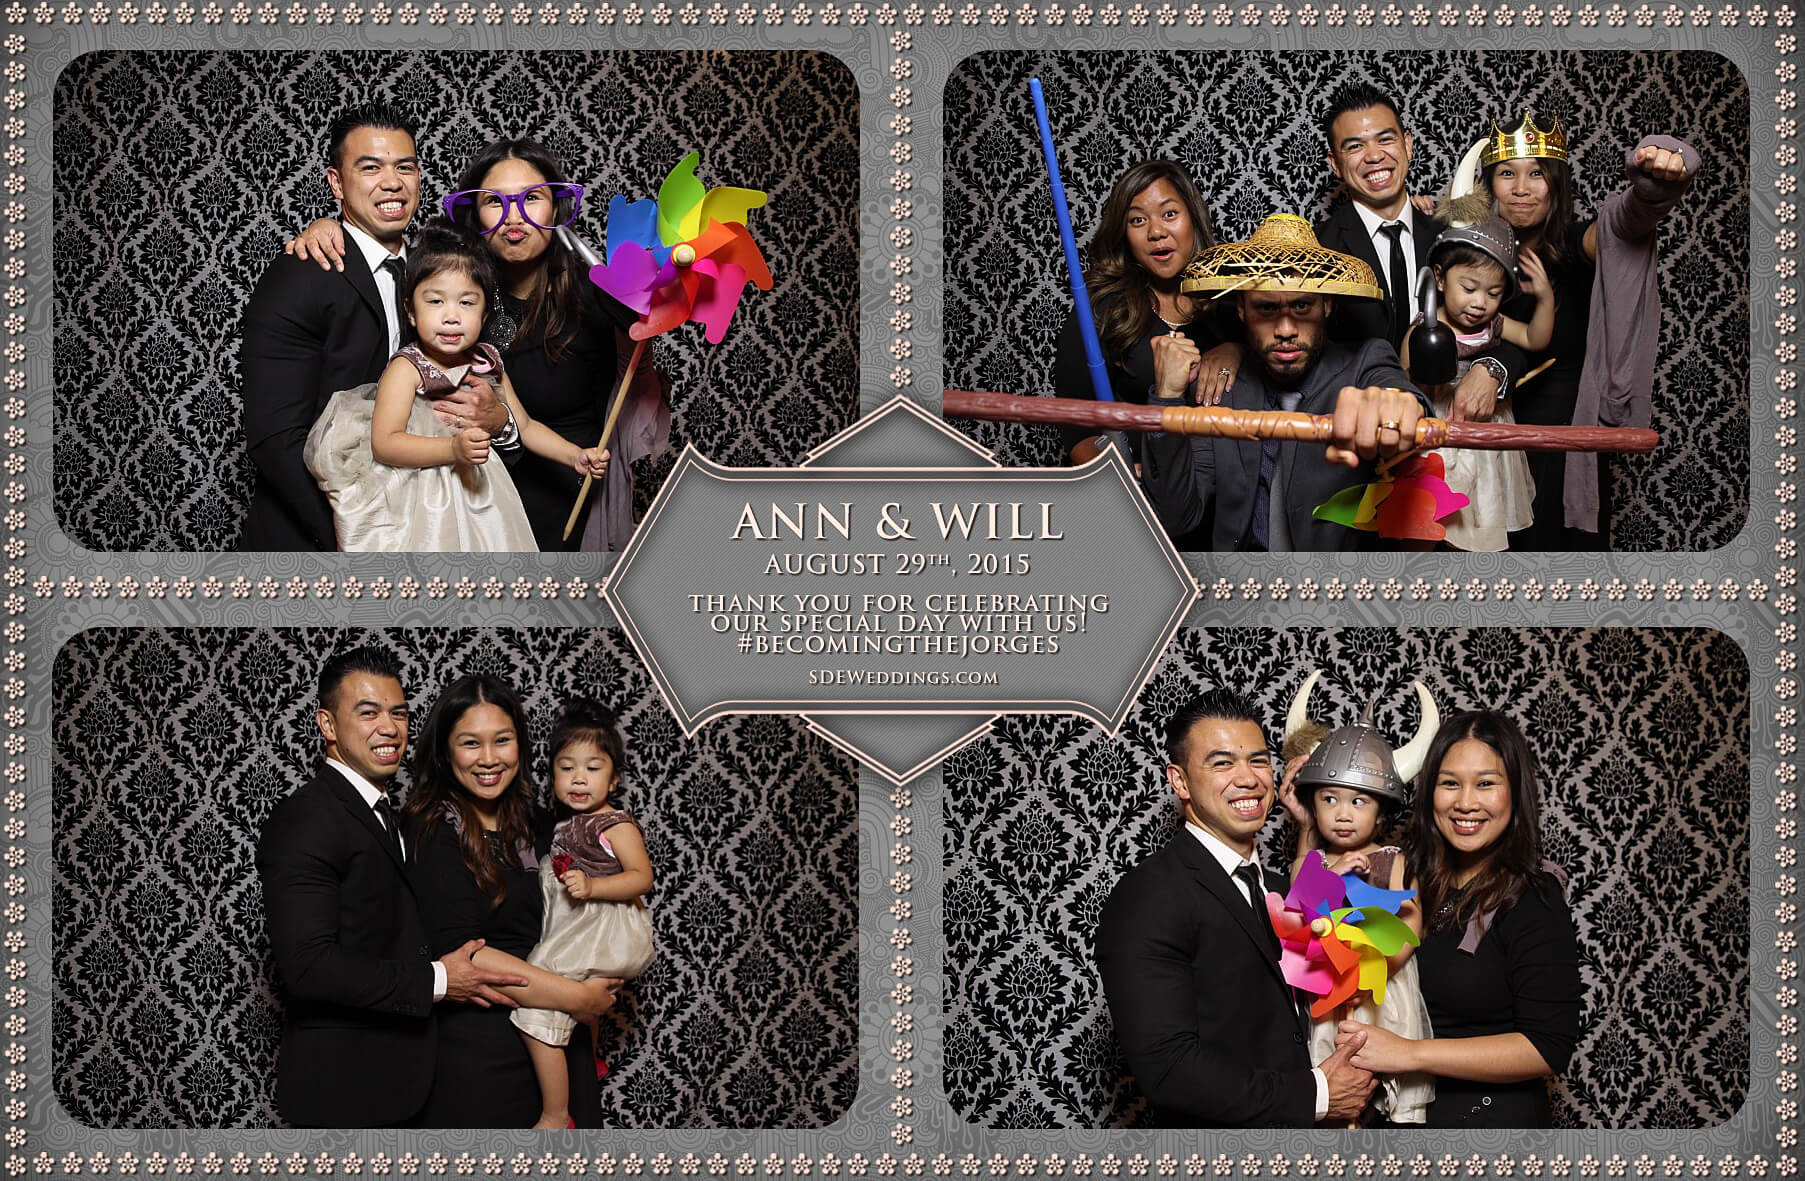 Toronto Wedding Photo Booth at Destiny Banquet Hall 7